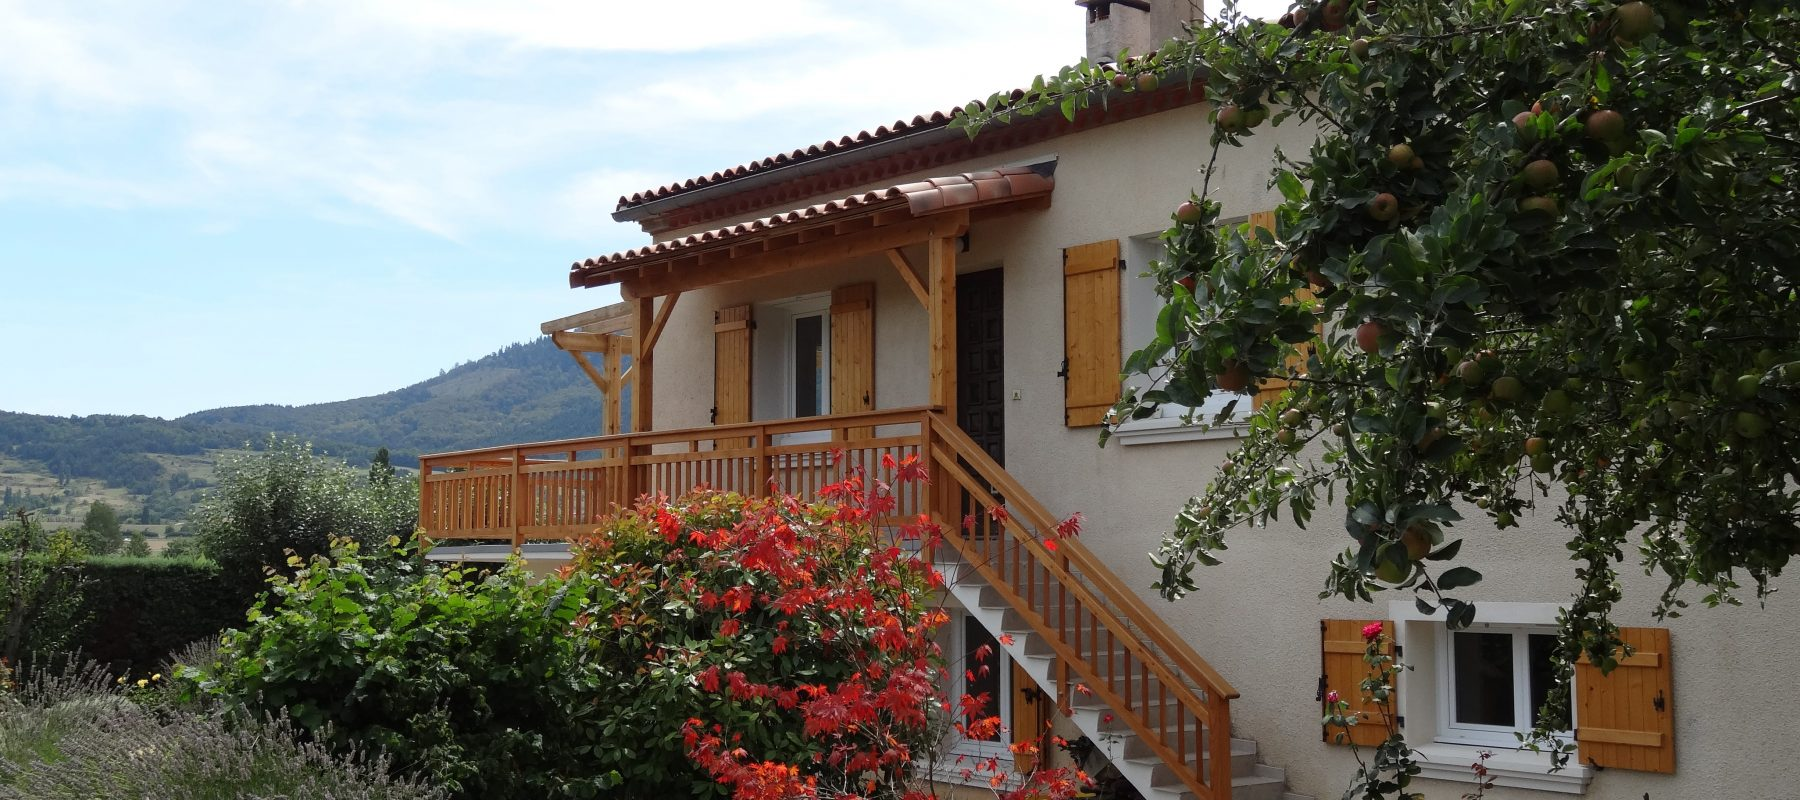 Wonderful holiday accommodation in the South of France